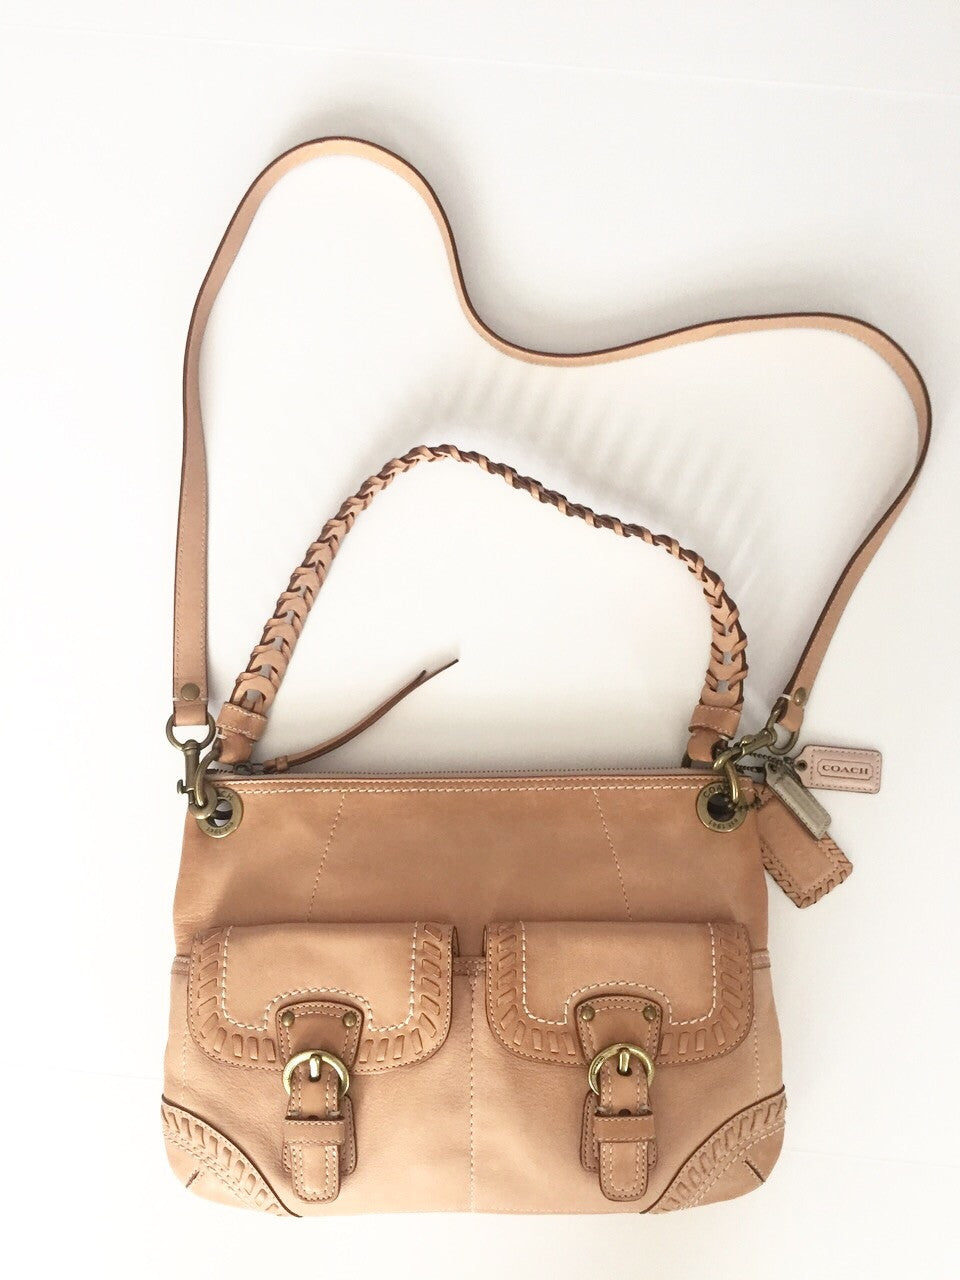 Coach Biege Whipped Stitch Leather  Cross-Body Bag